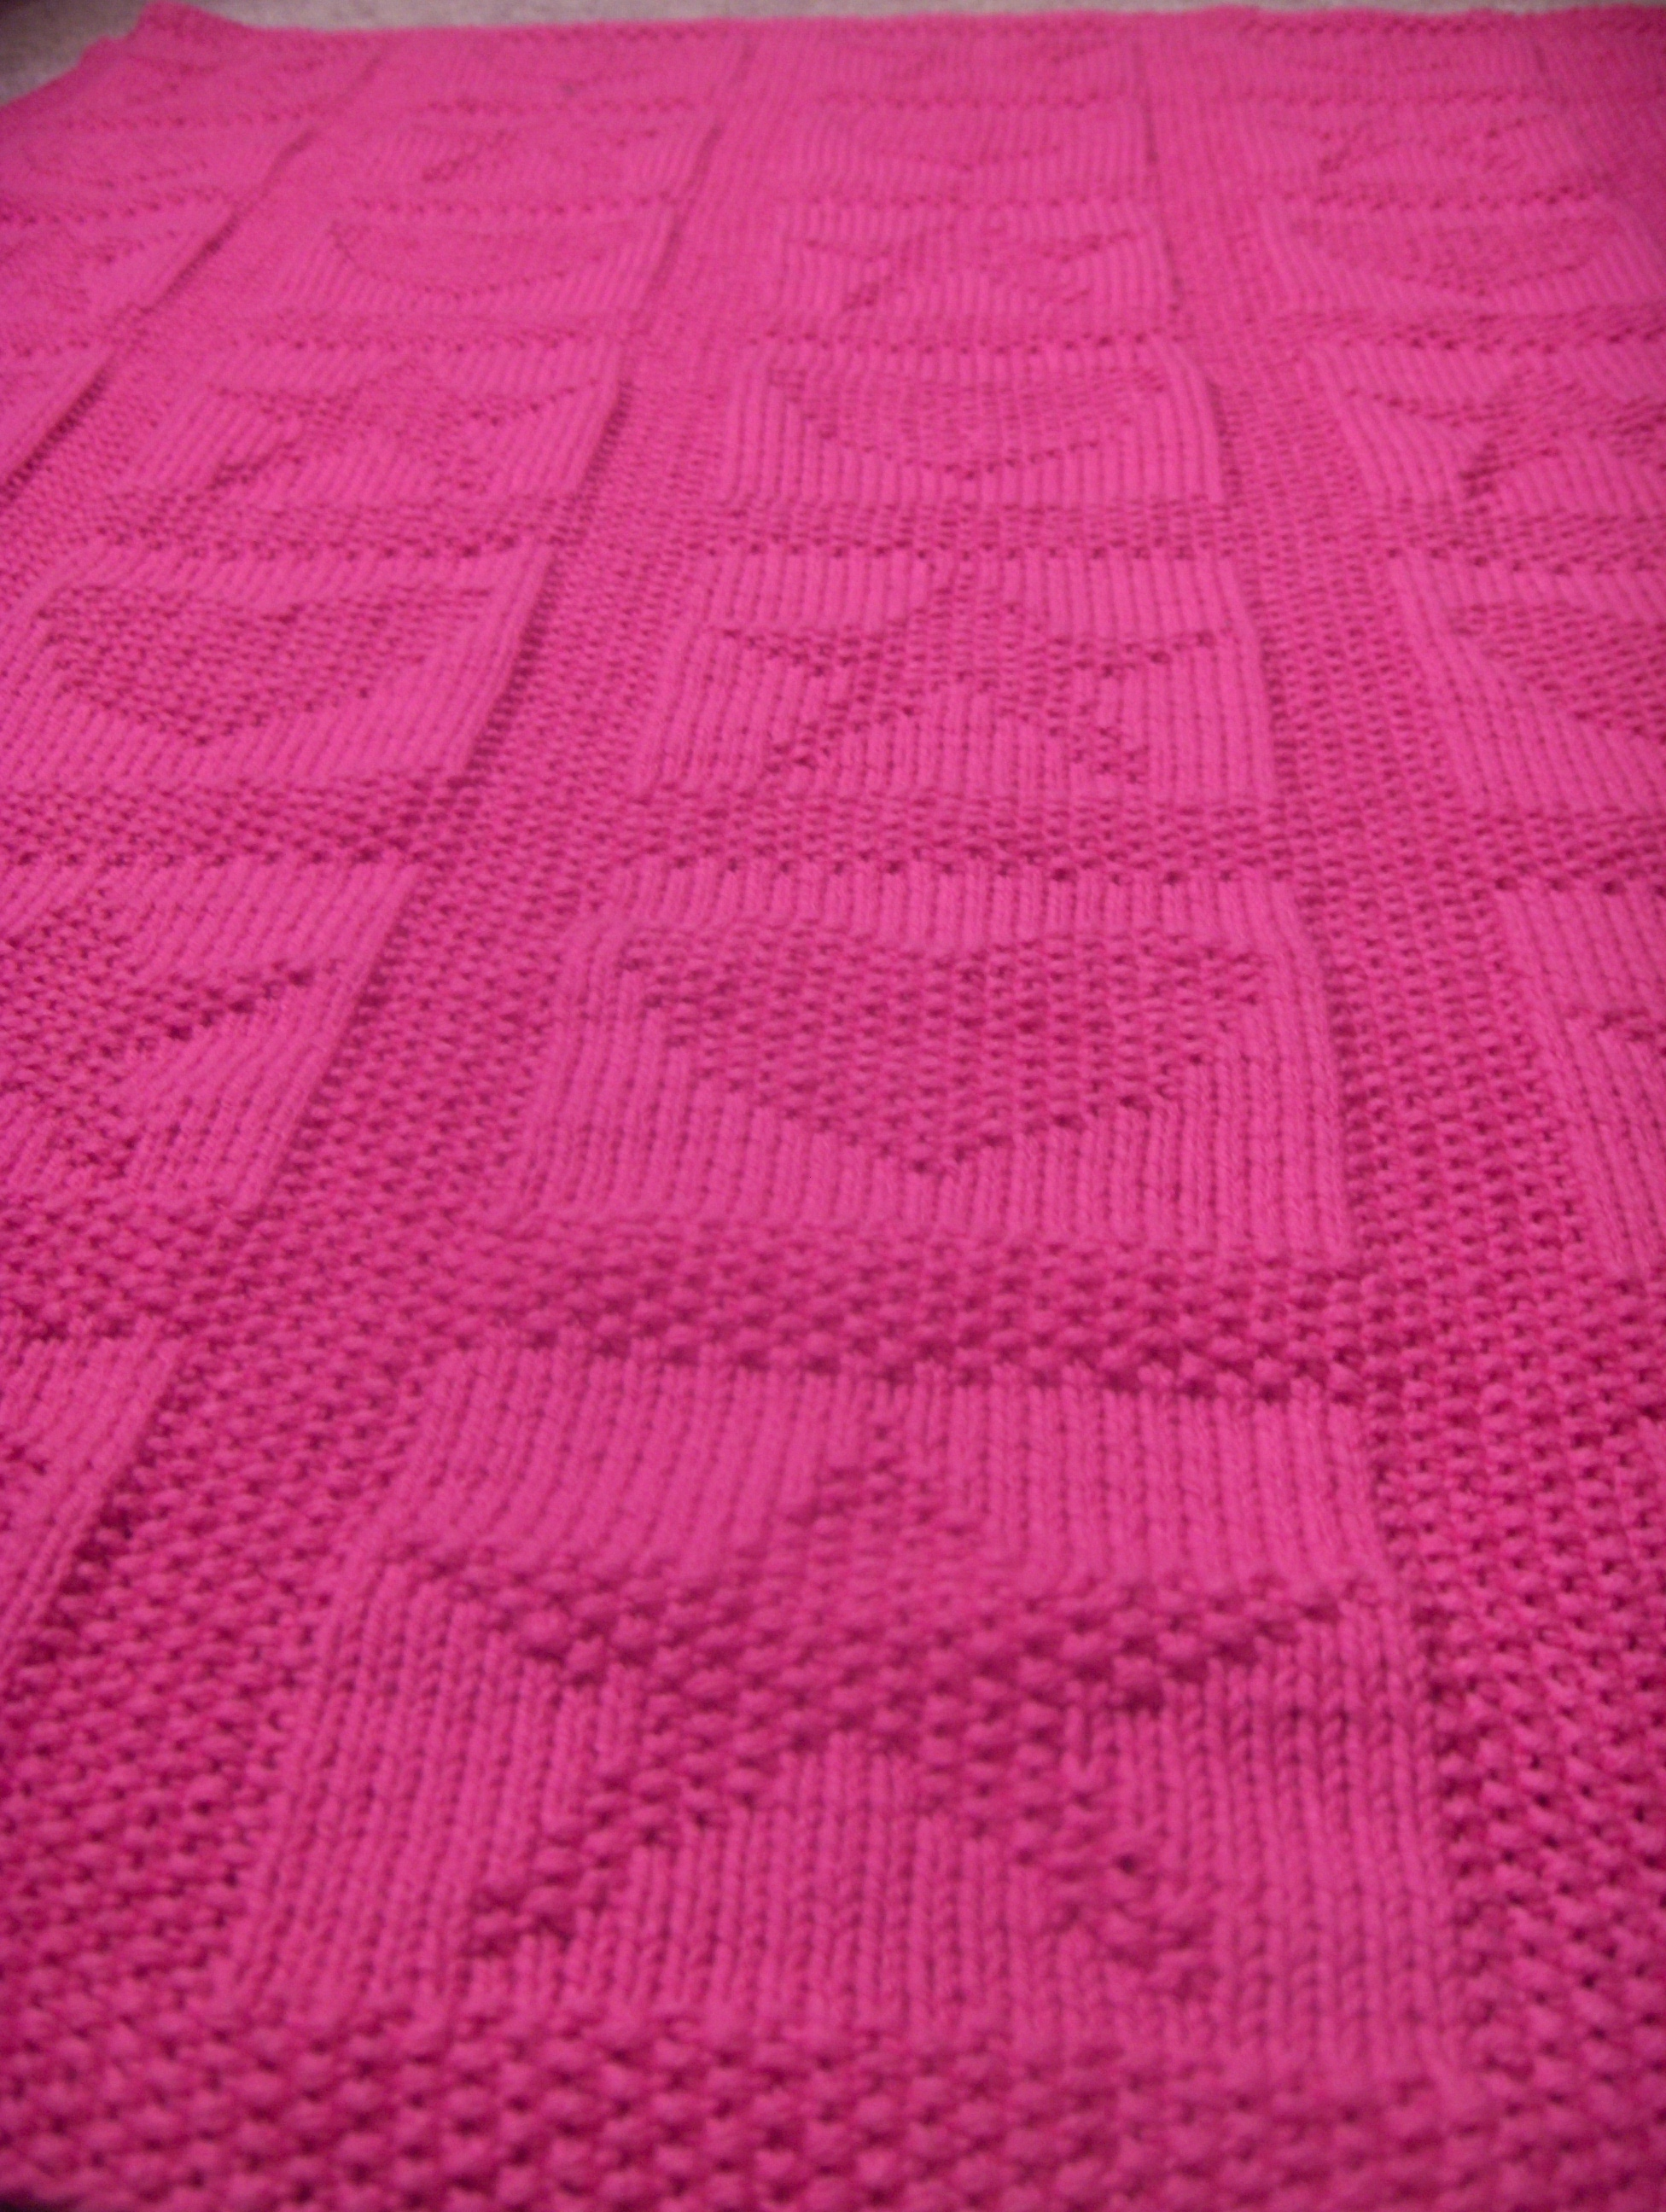 Knitting Patterns For Baby Blankets With Hearts : Heart Baby Blanket Easy Knitting Pattern Motorcycle Review and Galleries